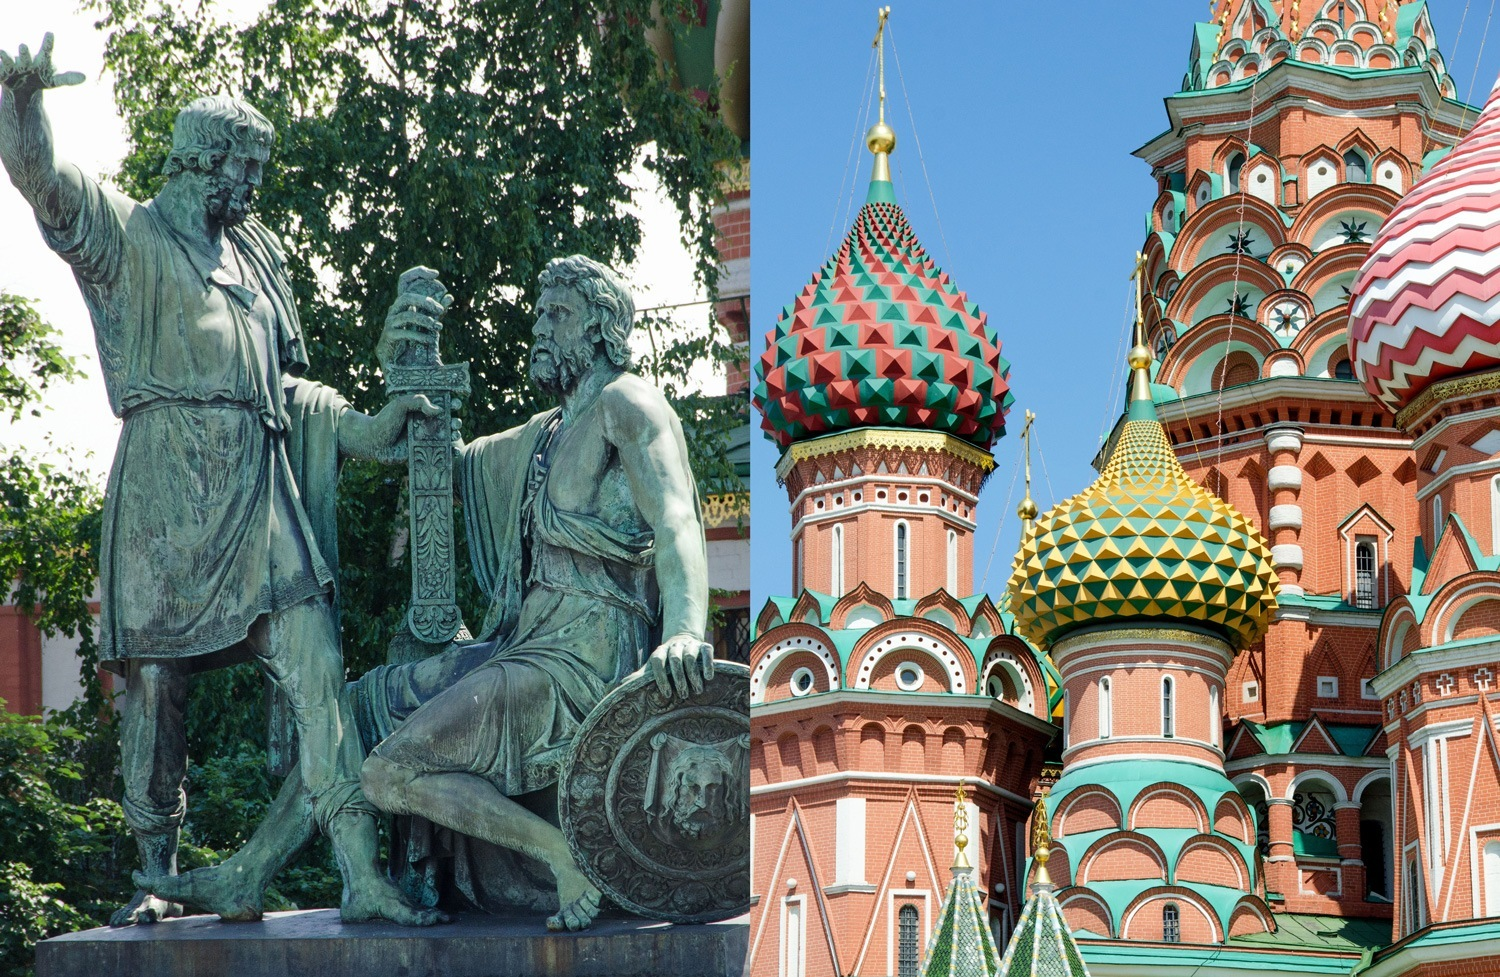 Cathedral of St. Basil  - Small Things in Big Numbers